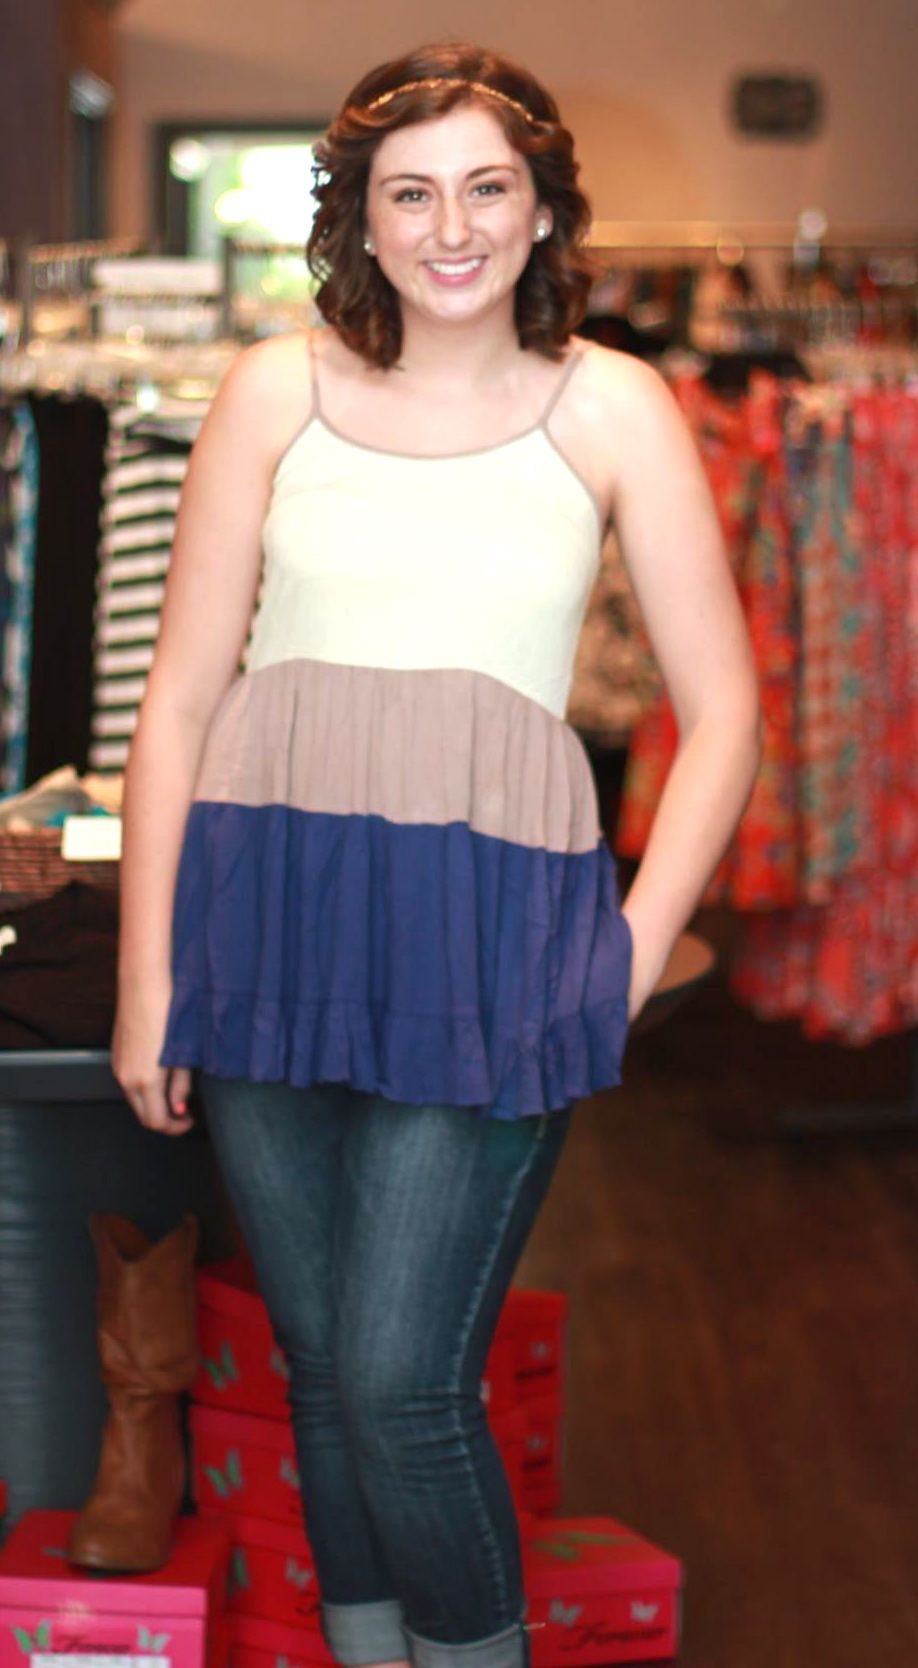 """""""Footprints in the Sand"""" top - $37 To order, call the boutique at 317-889-1150 or email jen@jendaisy.com"""